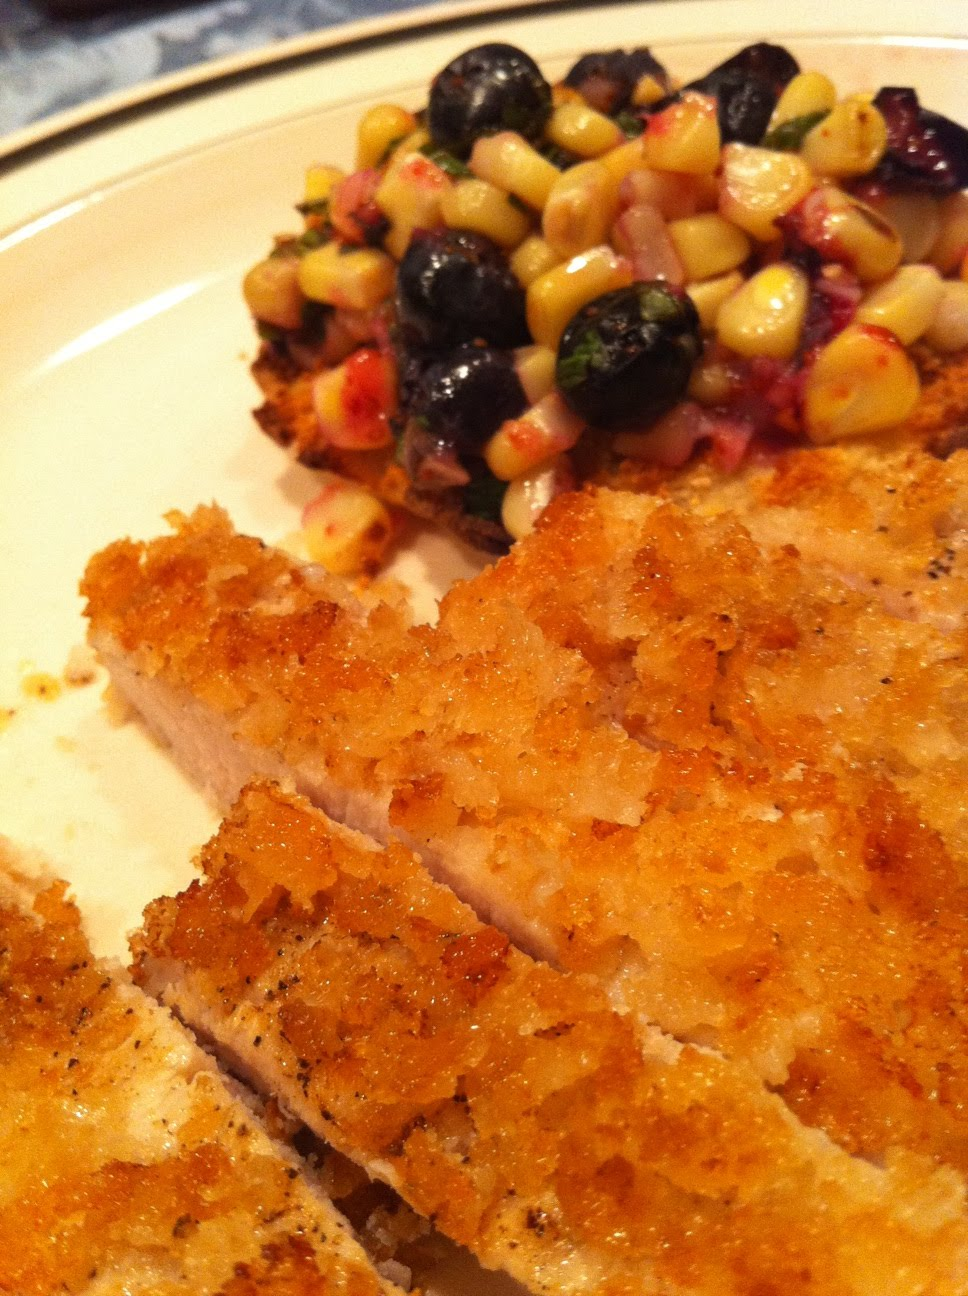 The Foodgitive: Fried Panko Pork and Grilled Corn ...